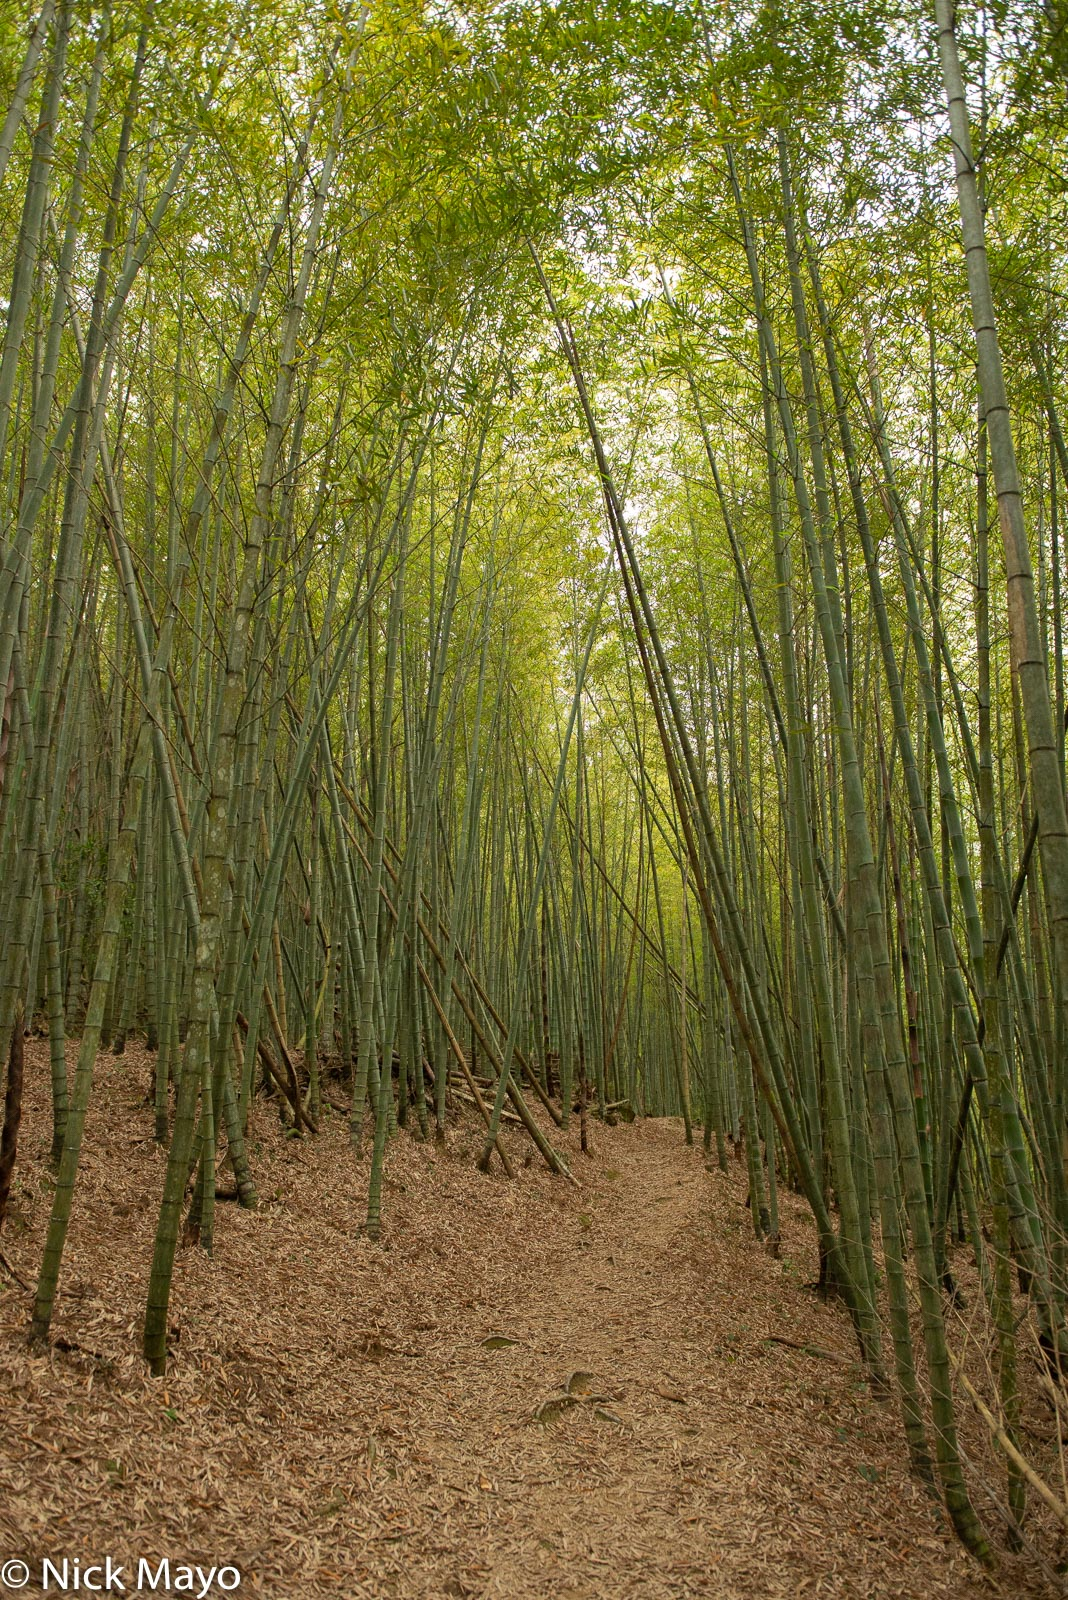 A section through bamboo of the old Ruitai trail near Ruili.